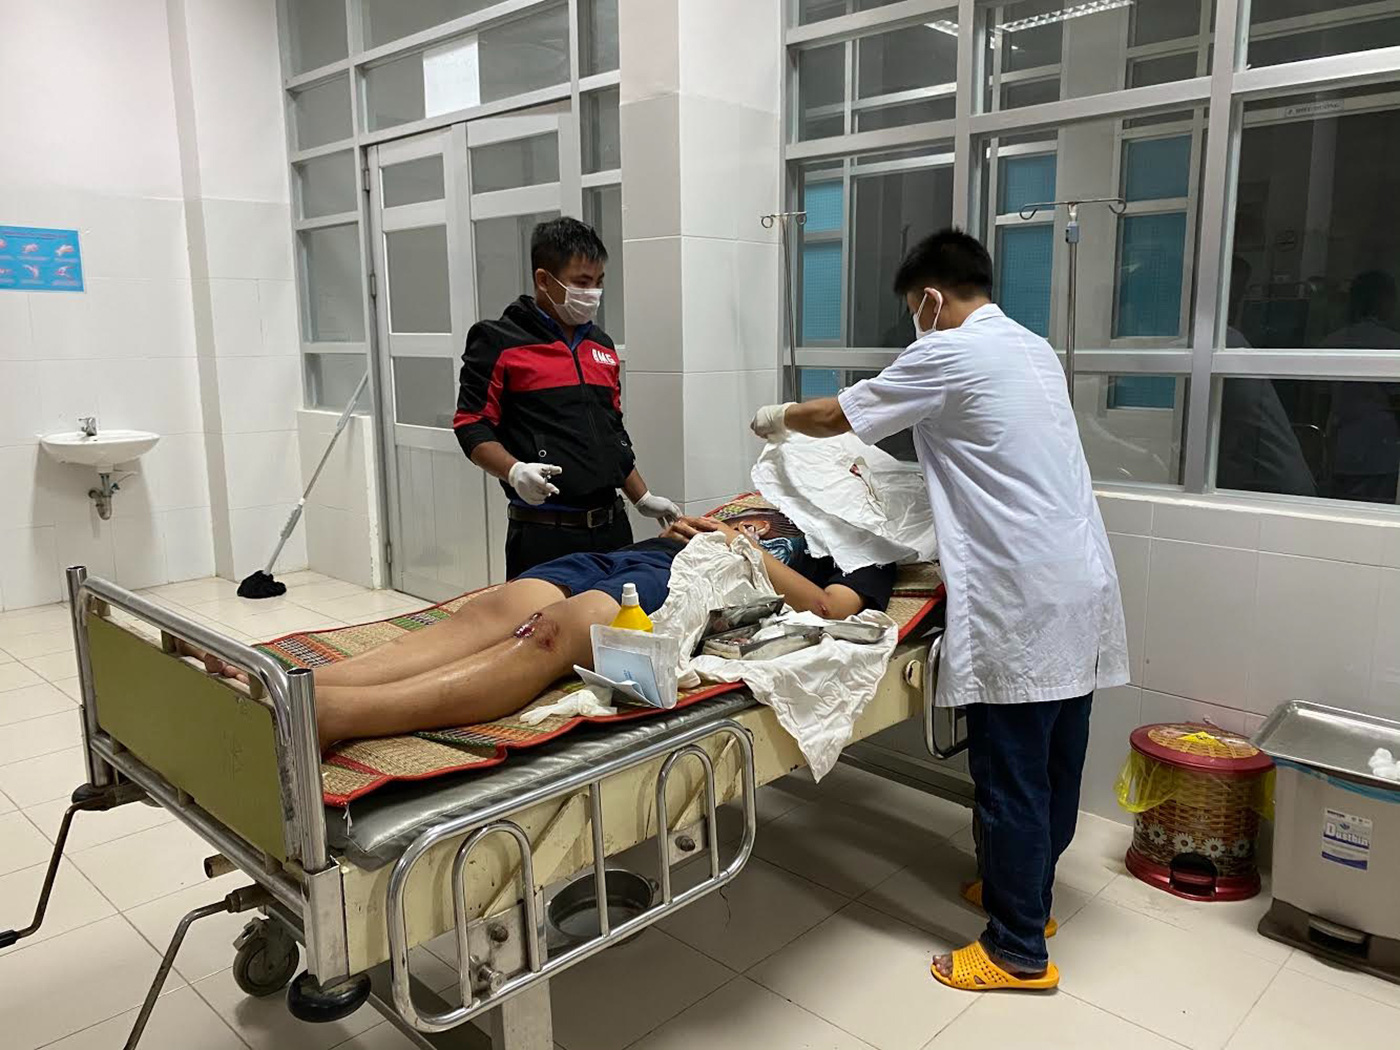 A victim of a passenger bus accident is treated at a medical center in Tuy An District, Phu Yen Province, Vietnam on January 26, 2020. Photo: Pham Thanh / Tuoi Tre